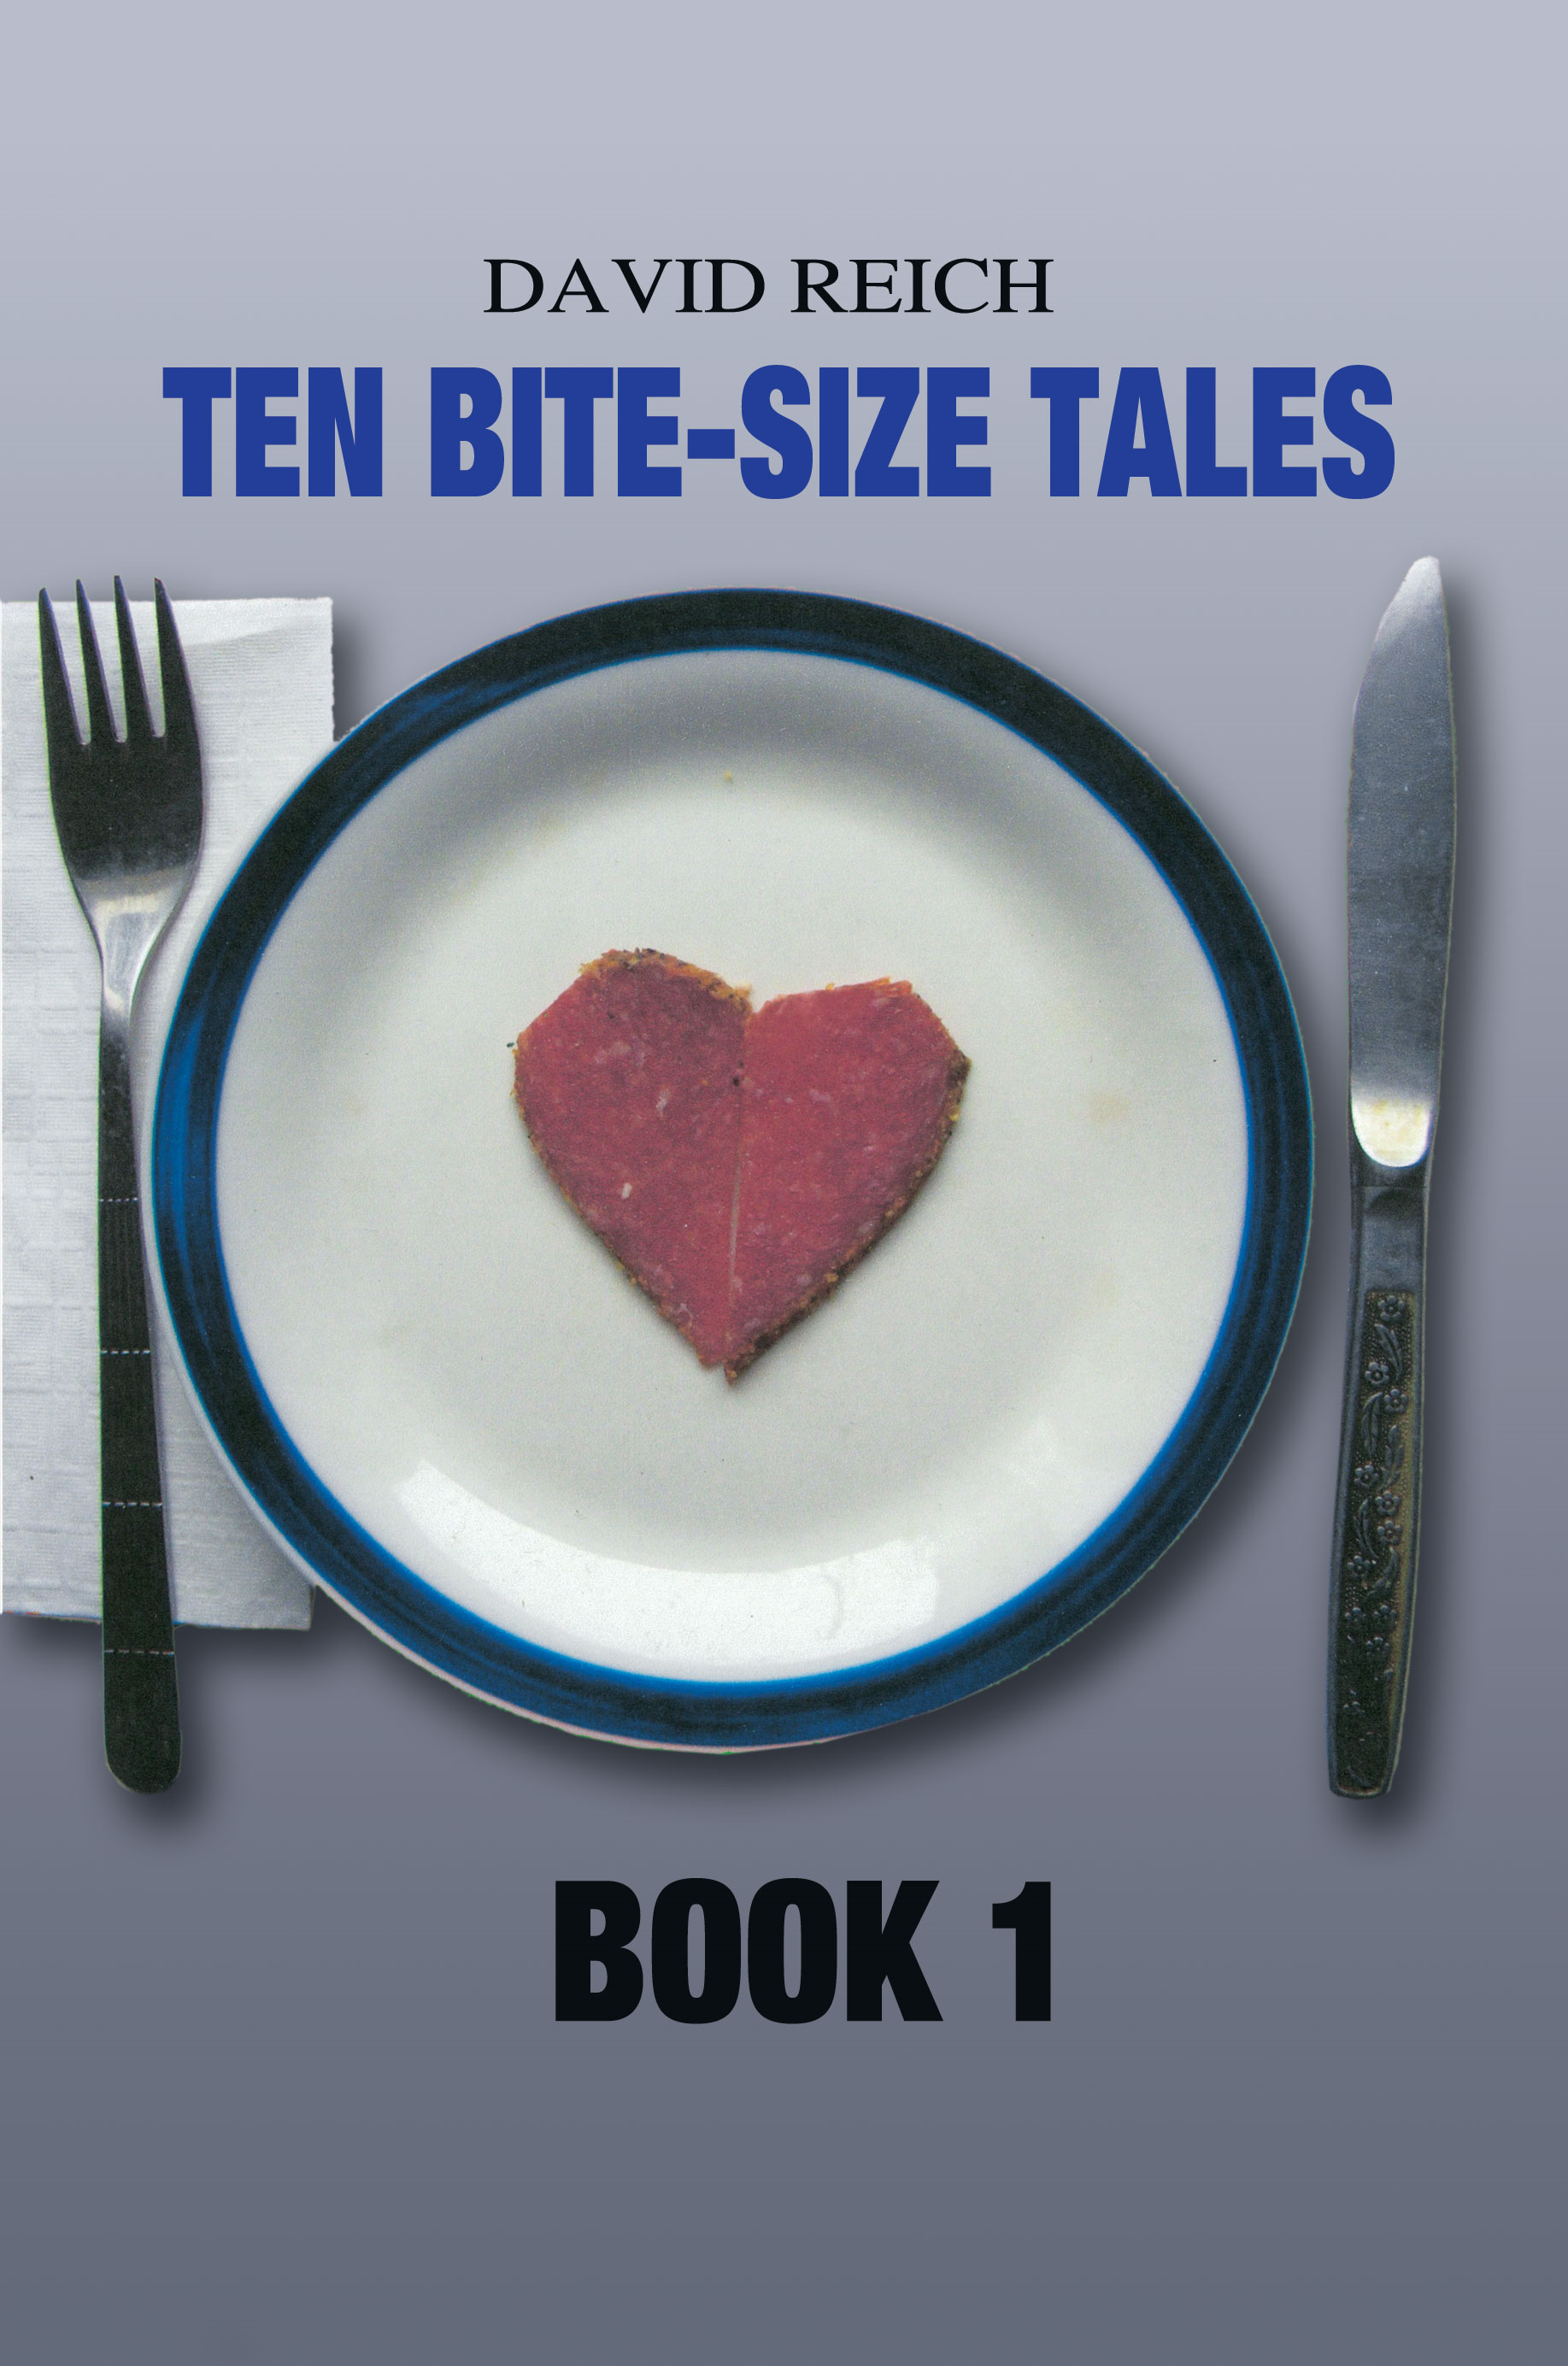 TEN BITE-SIZE TALES - BOOK  1